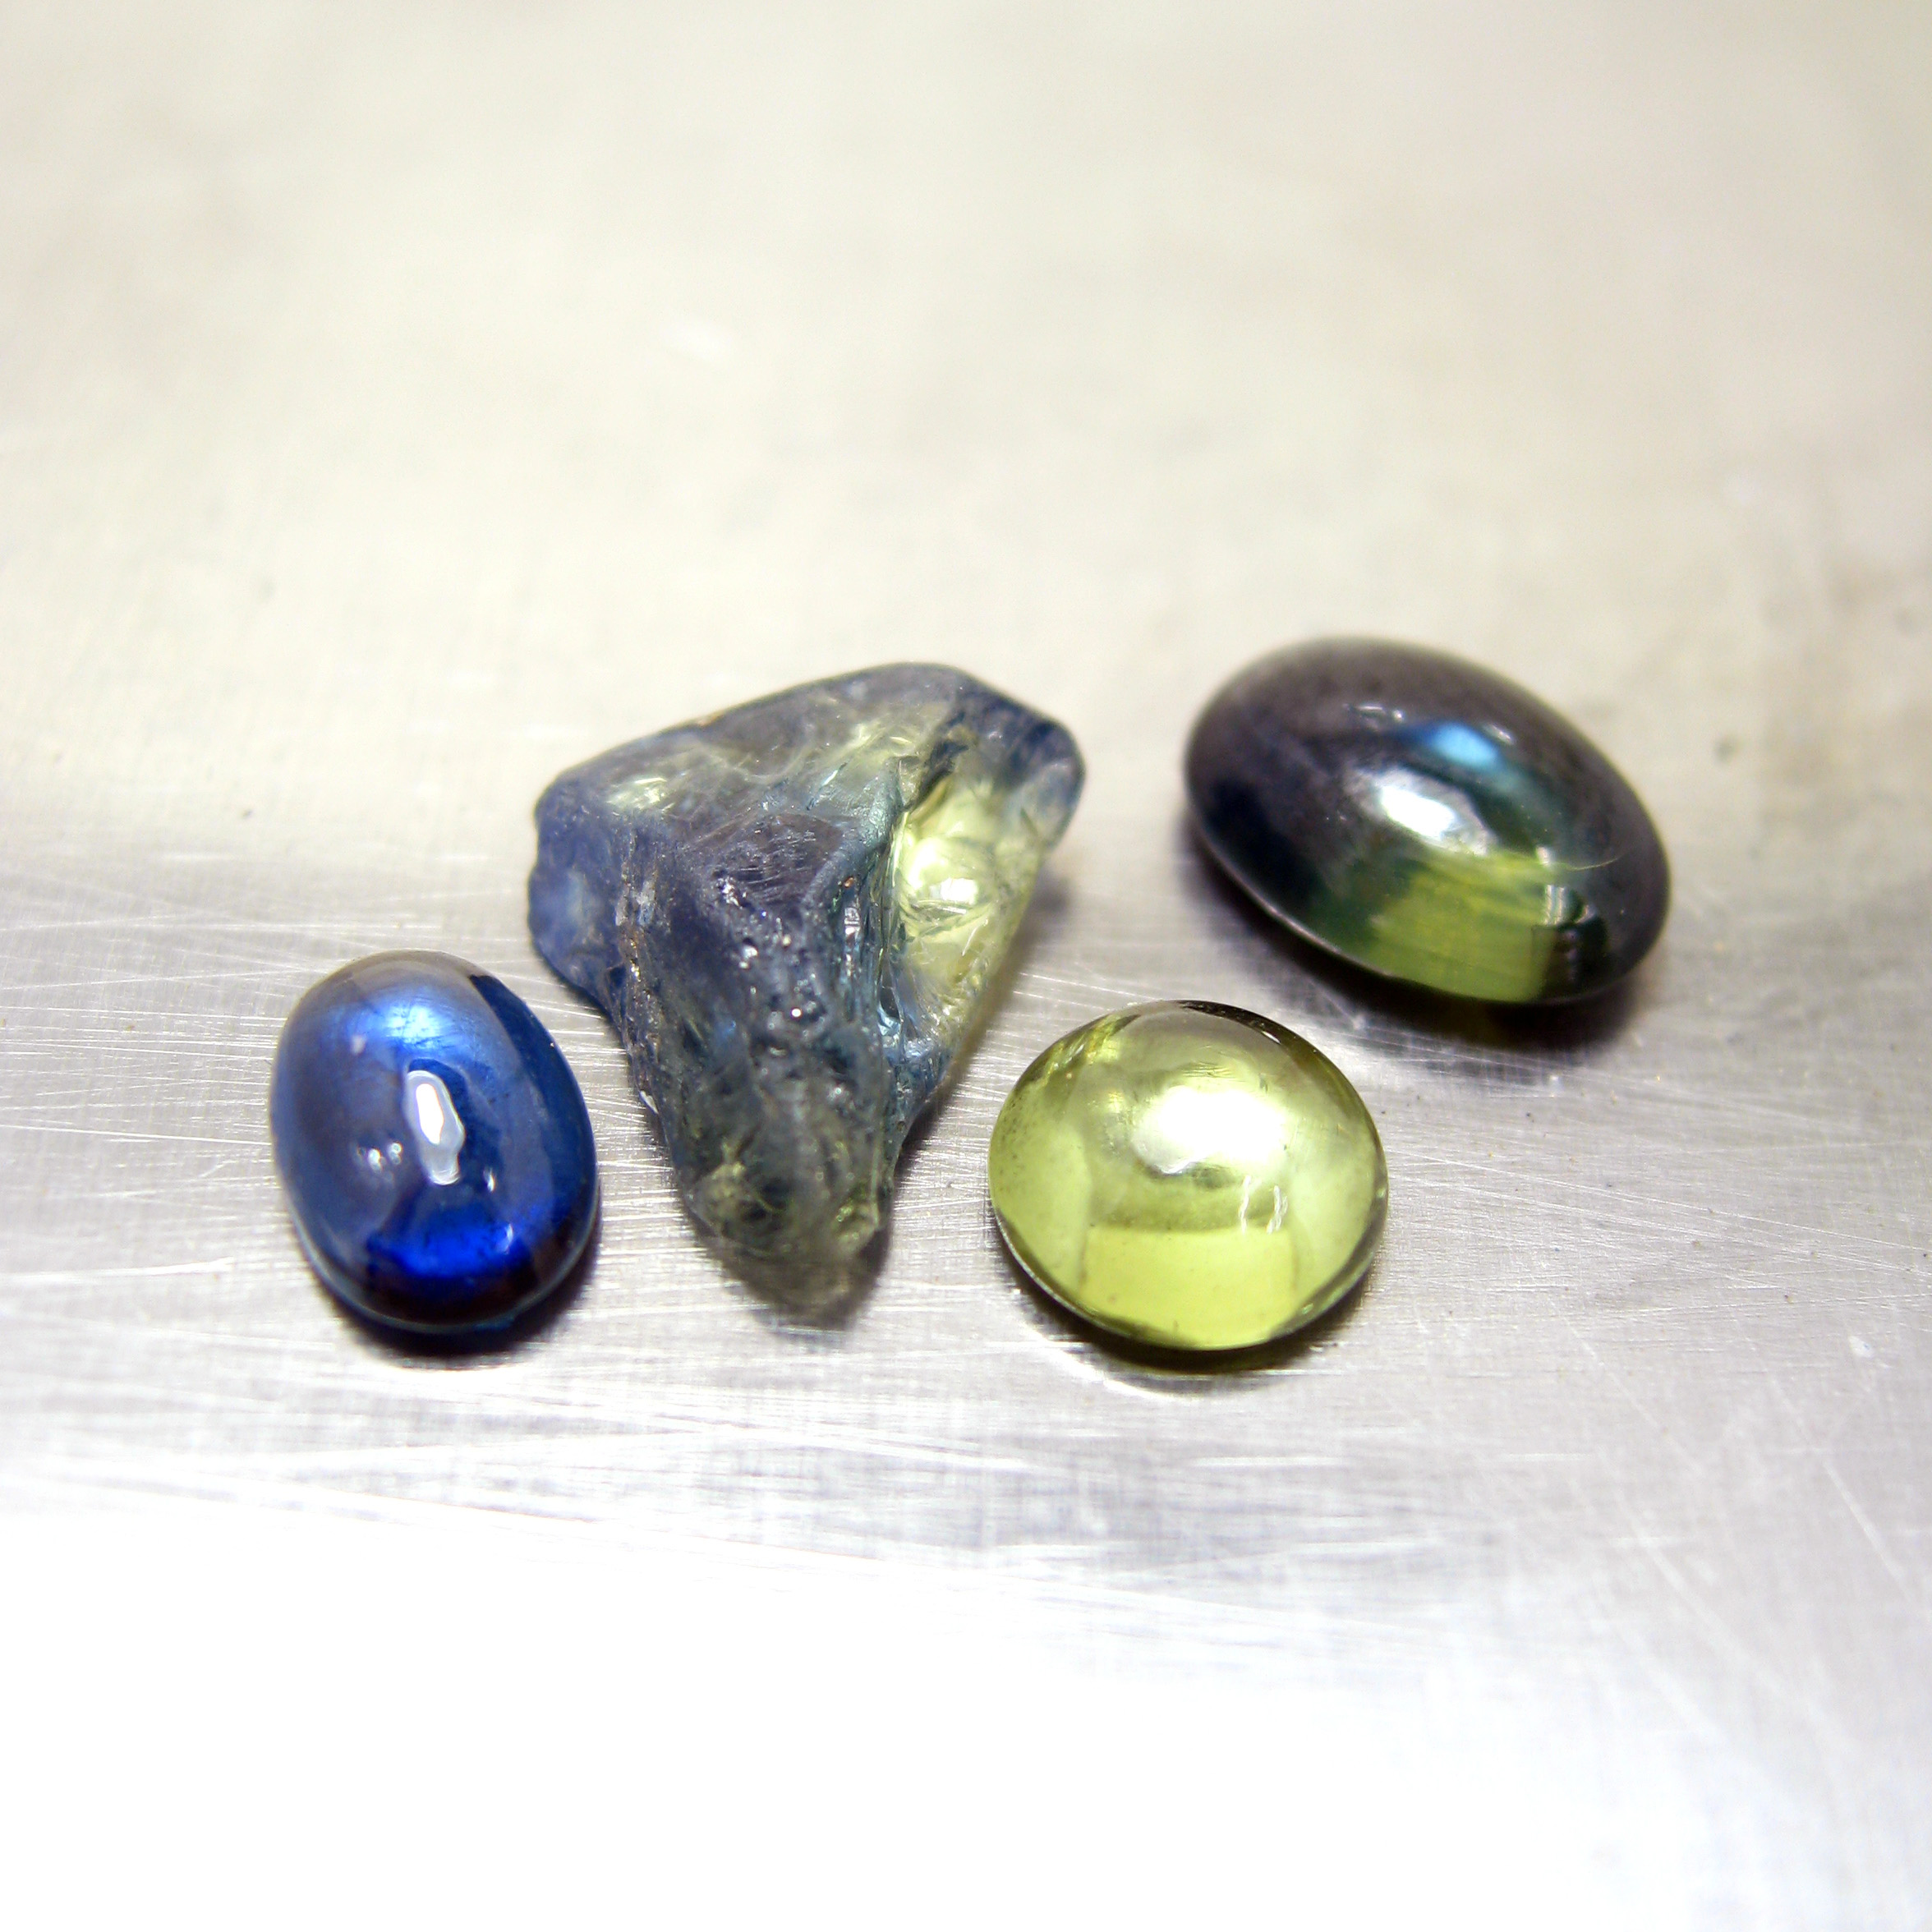 Australian bi-color sapphires. The colors were un-freakin-real.